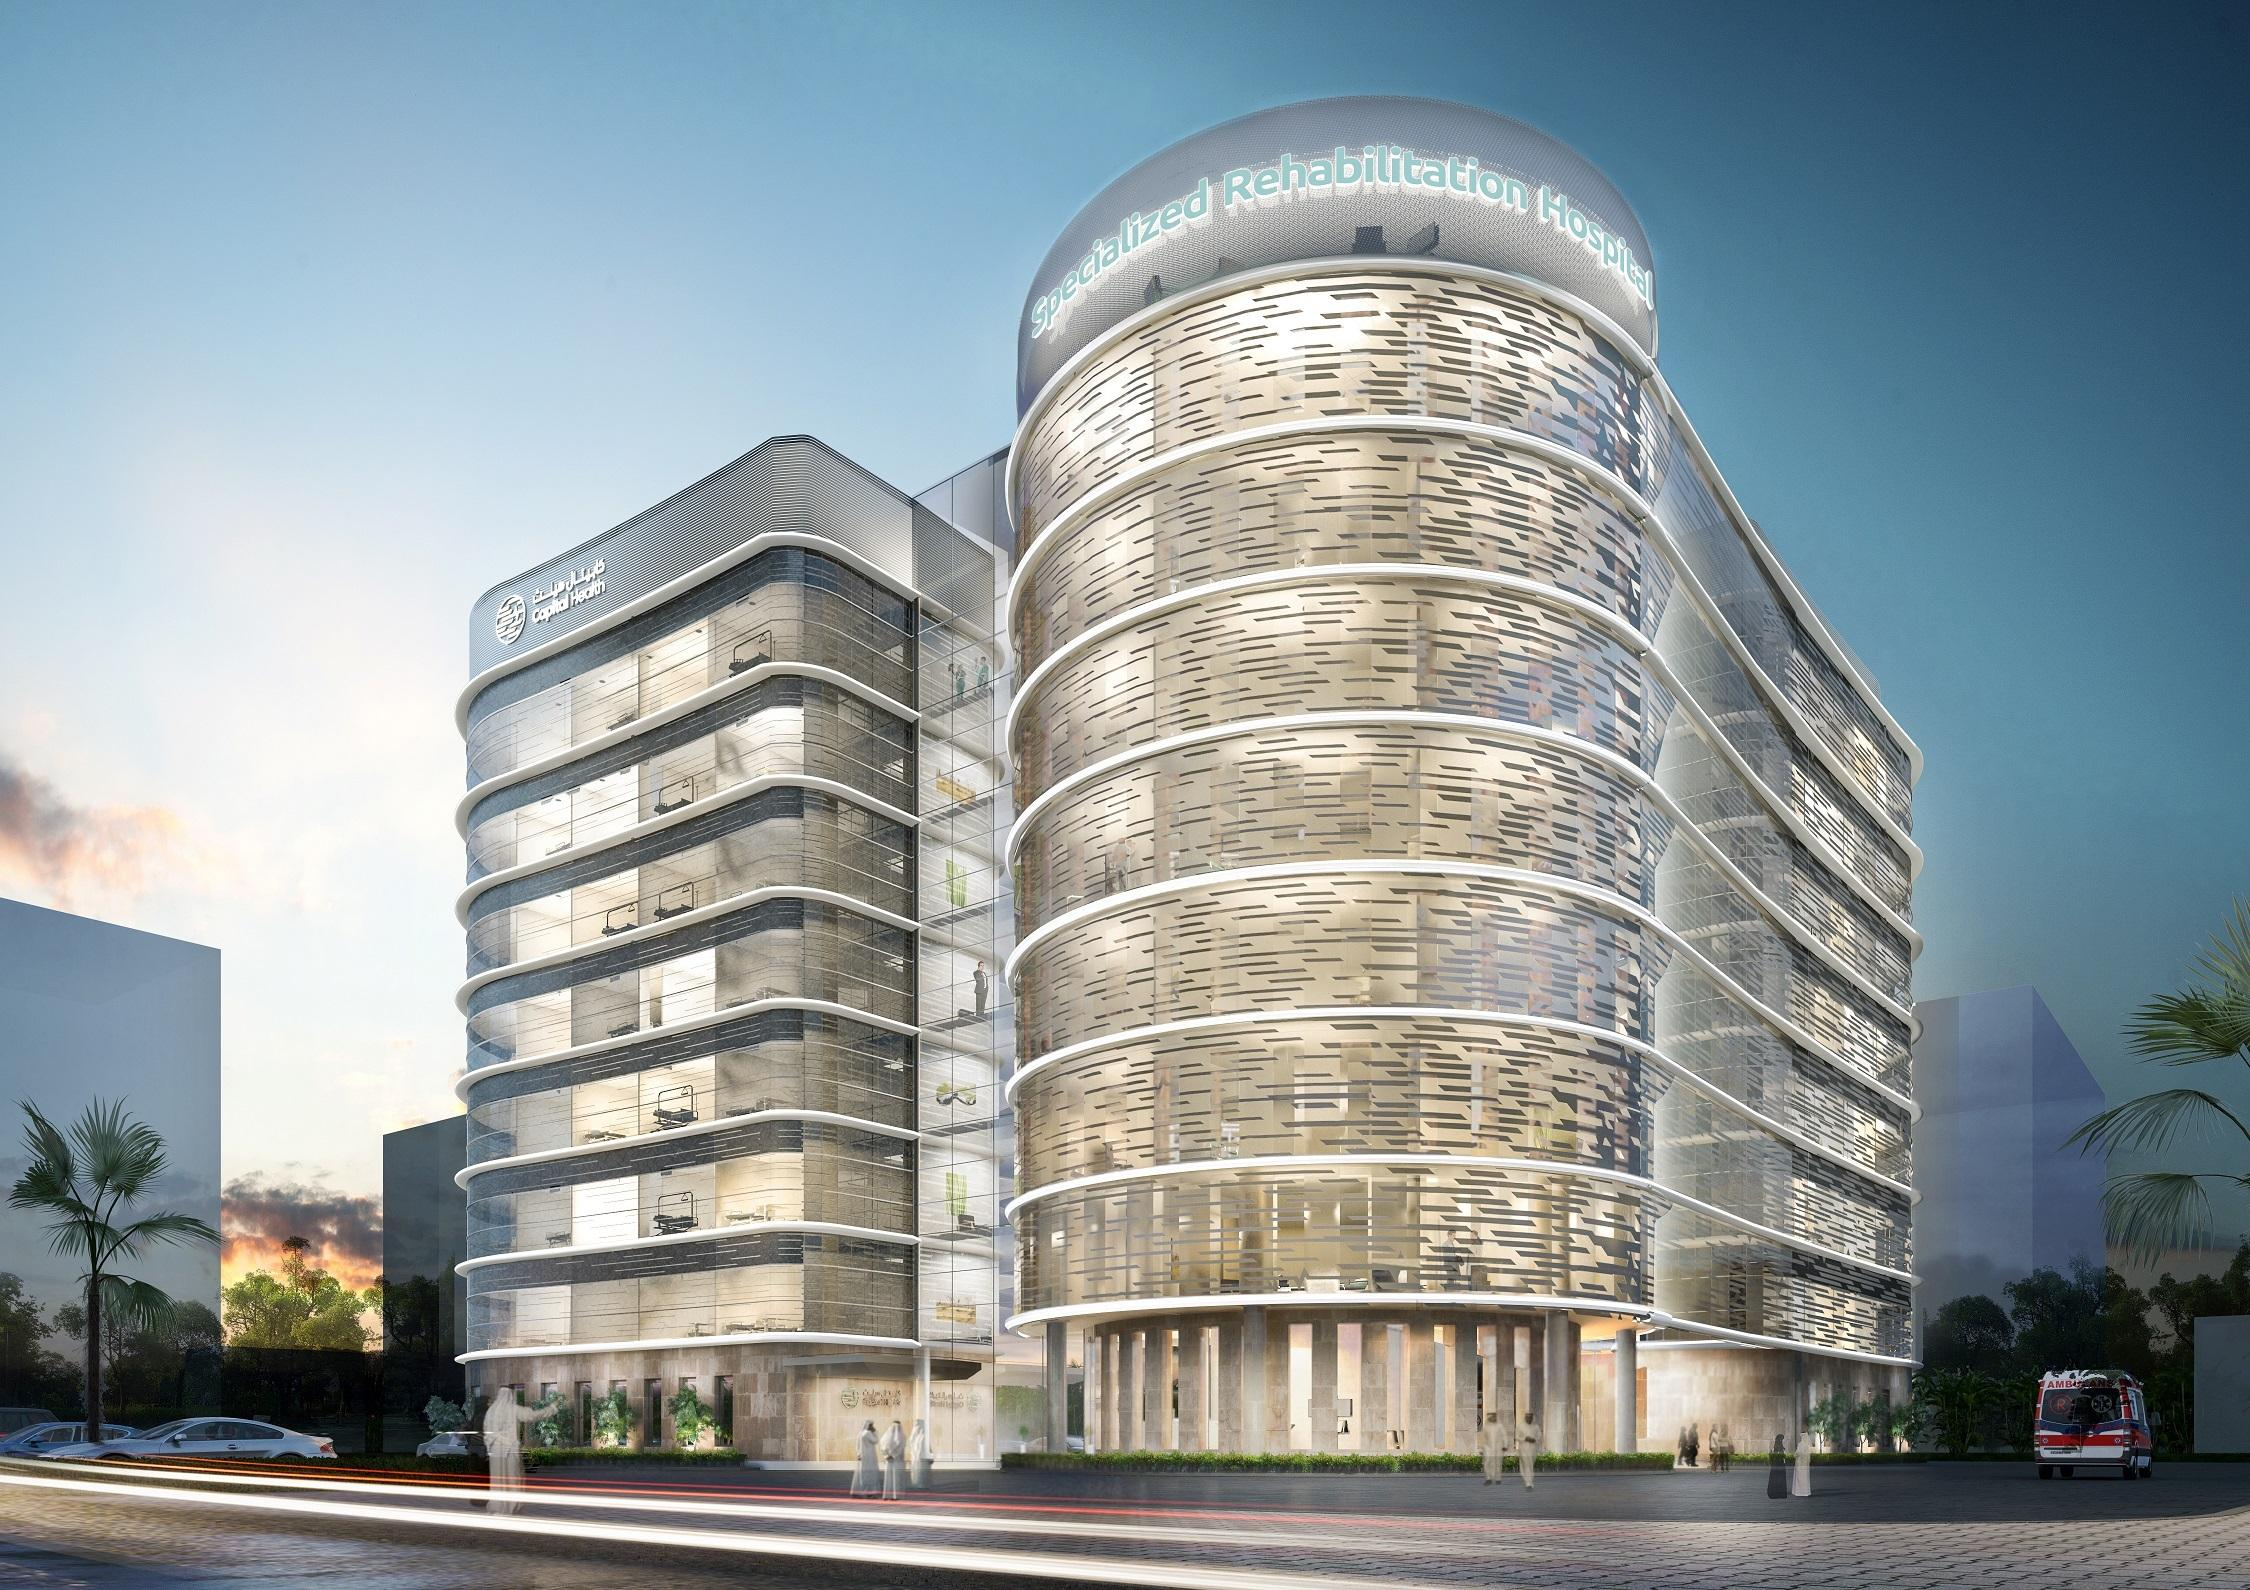 Cleveland Clinic Abu Dhabi Building